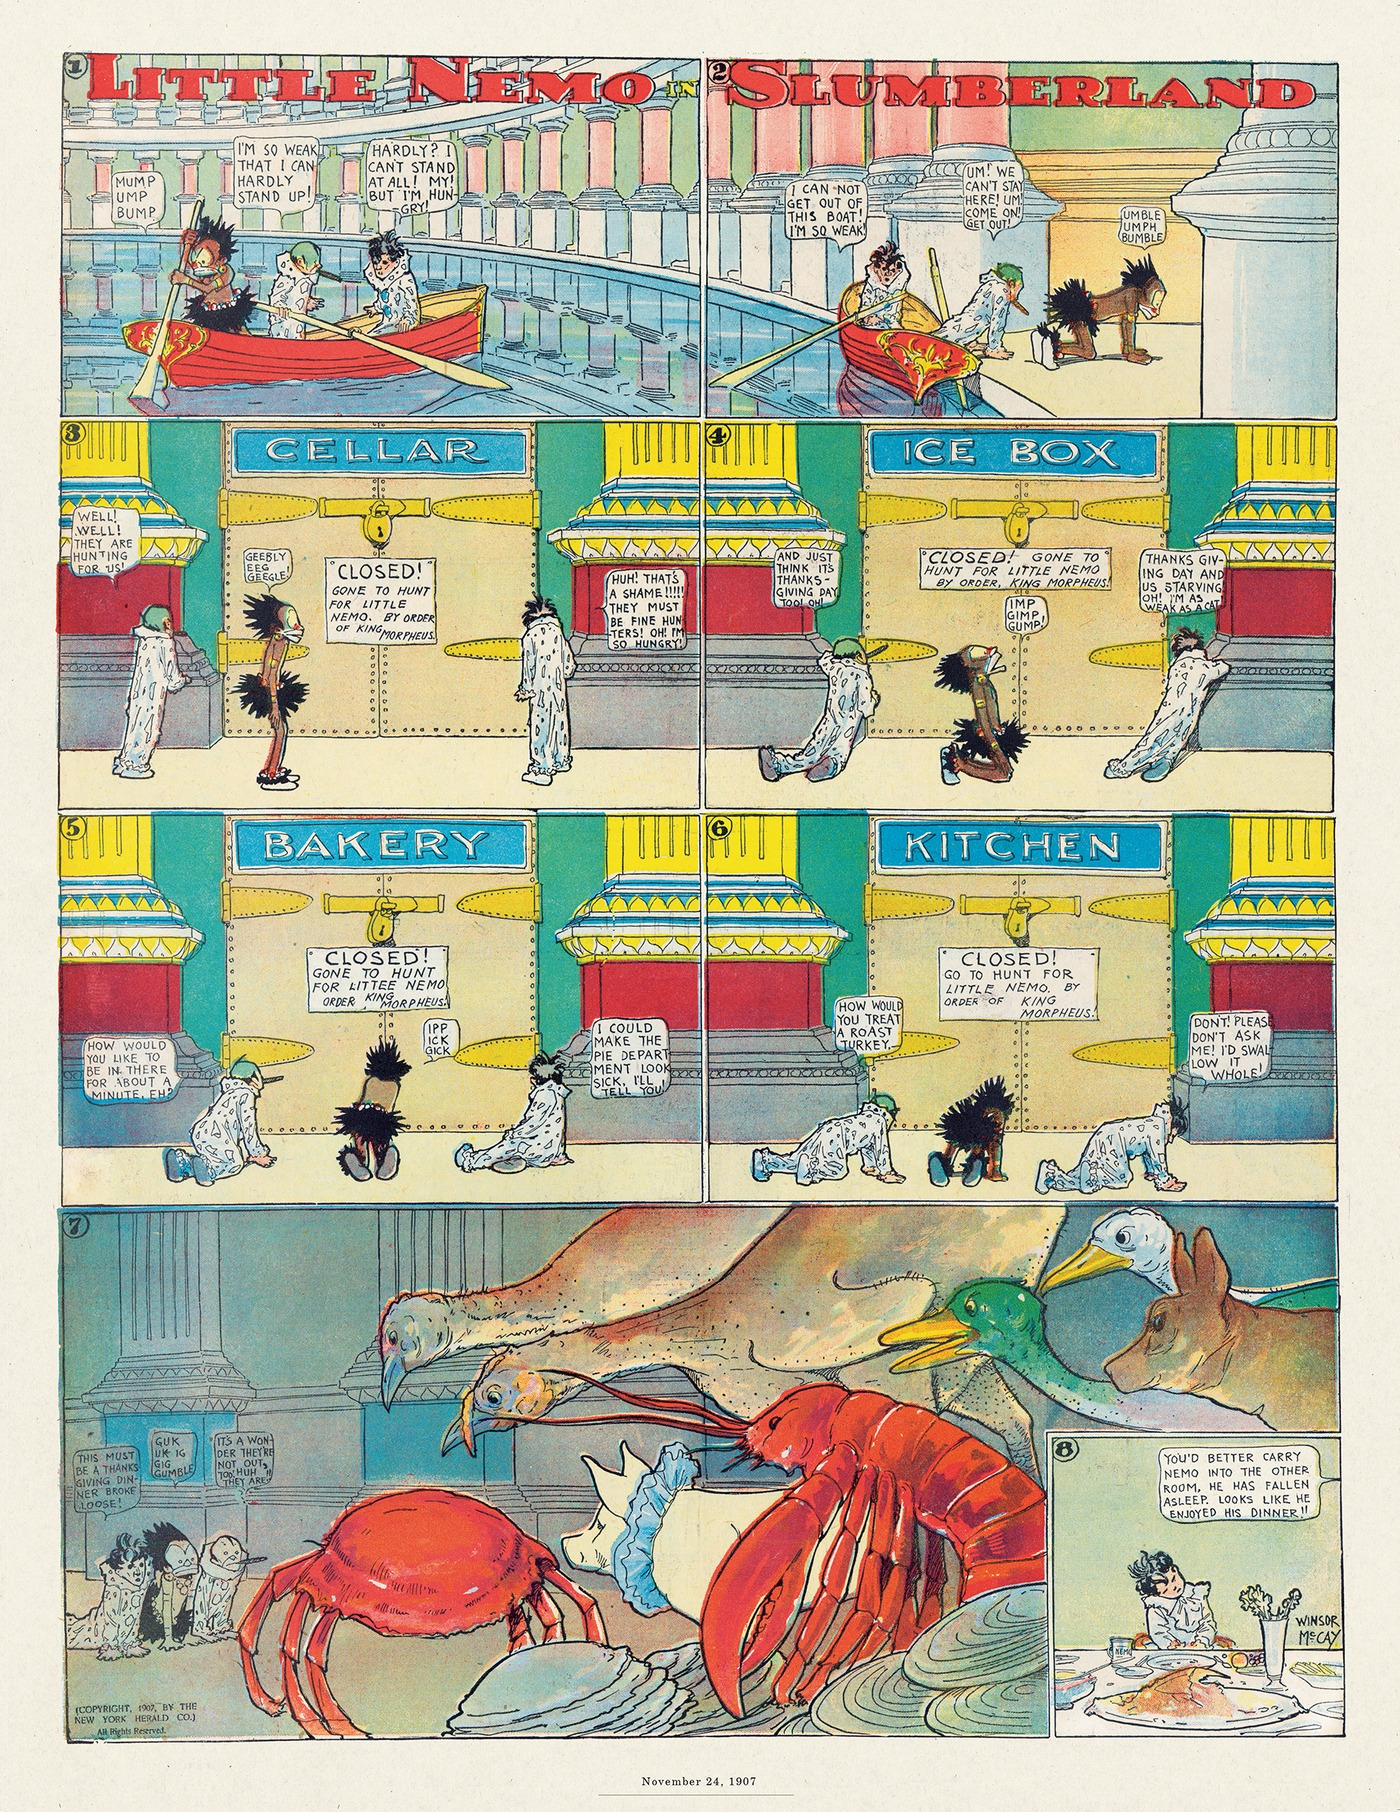 Little Nemo by Winsor McCay on Thu, 20 Aug 2020